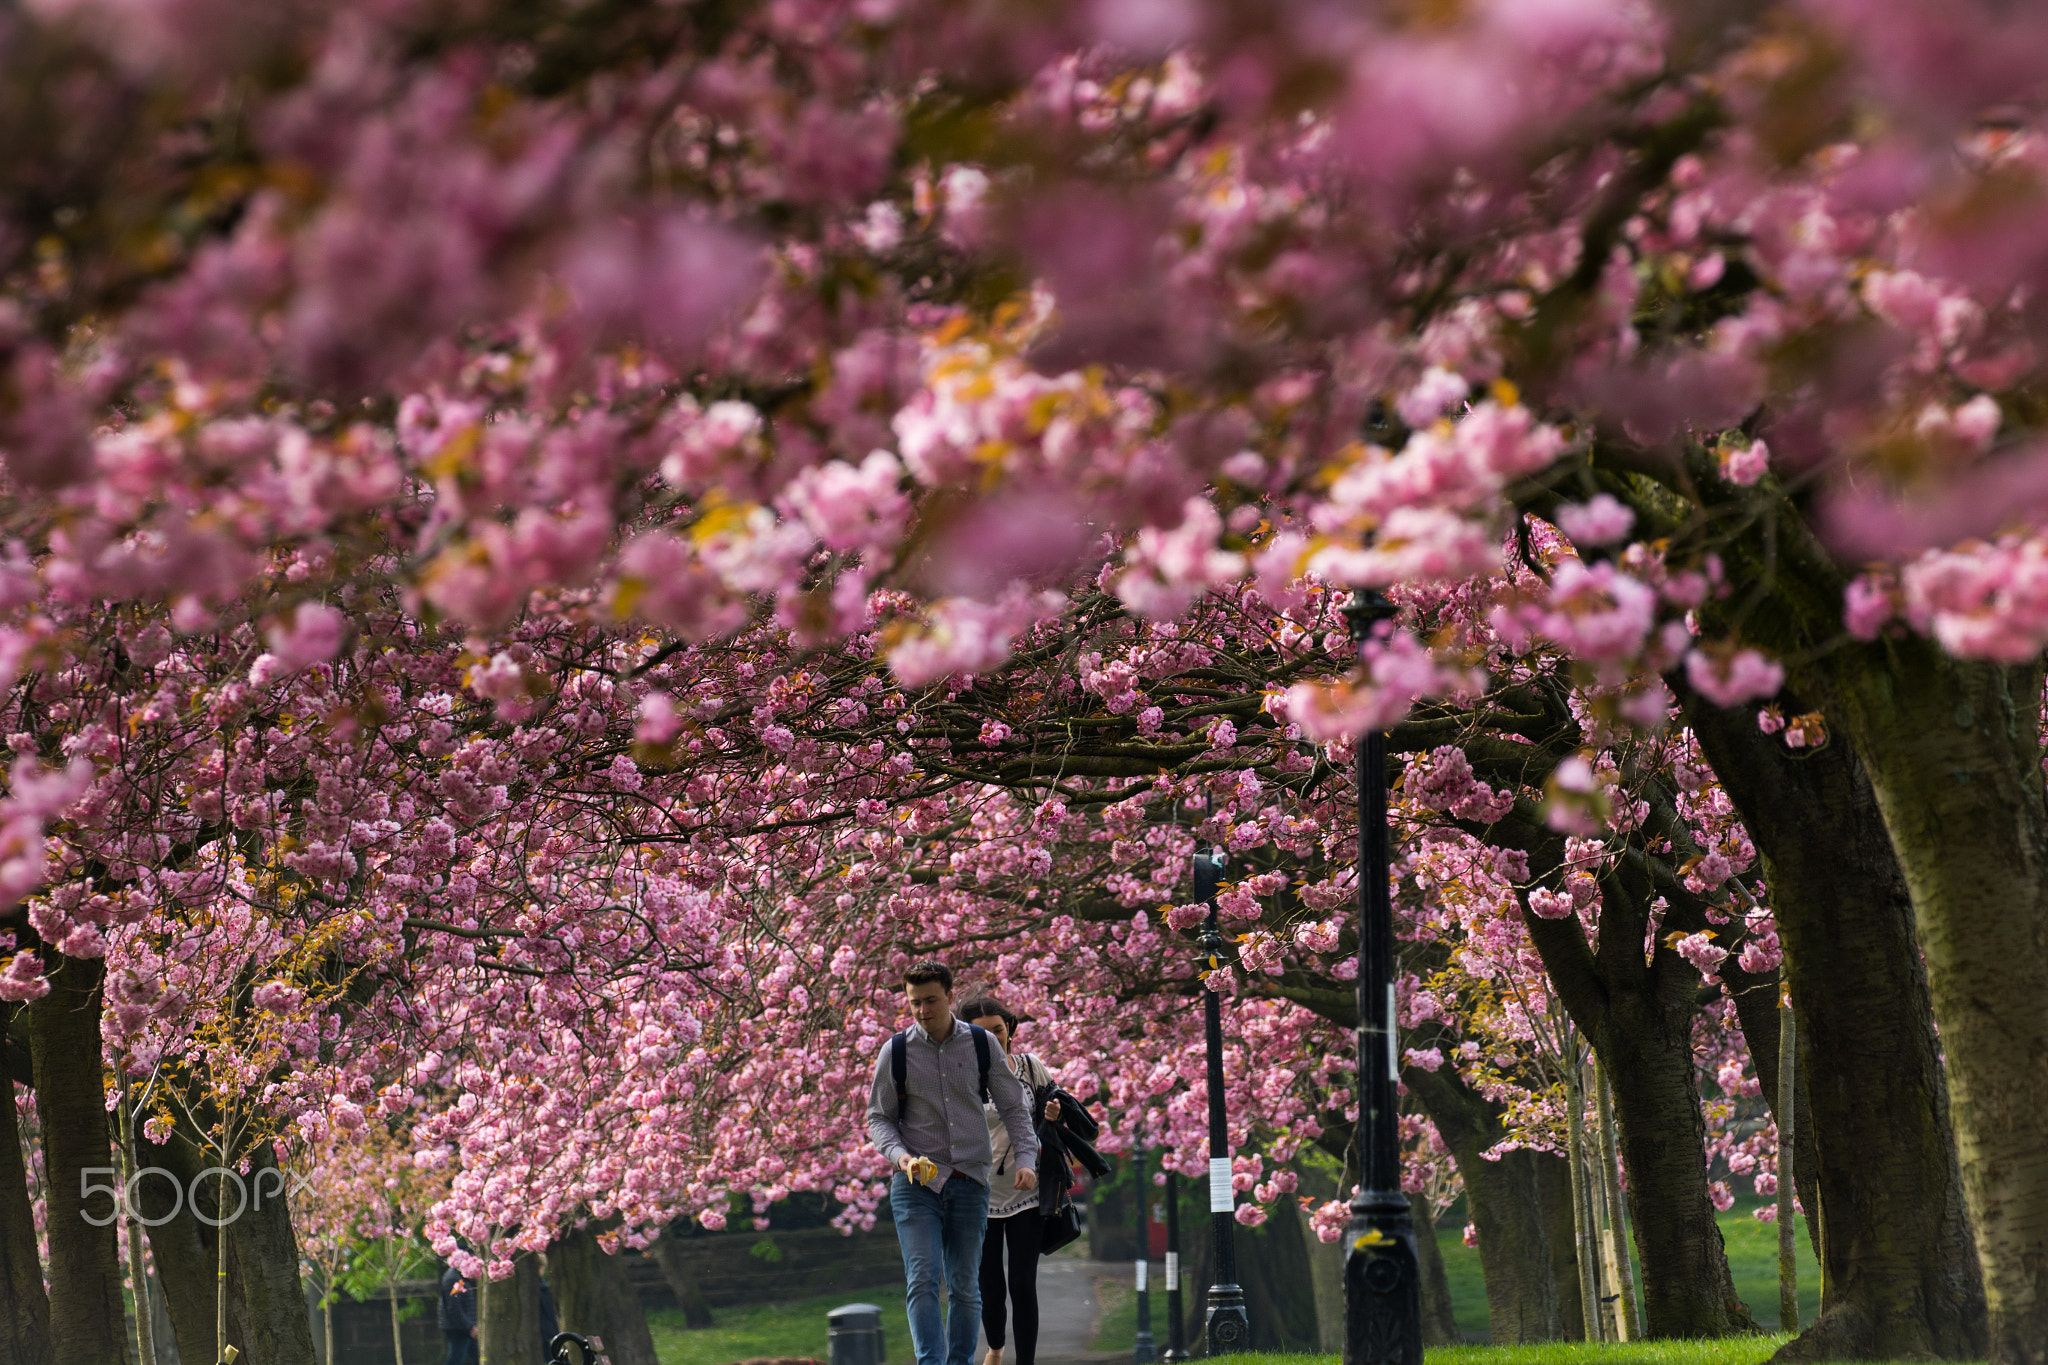 People Walking Under A Canopy Of Cherry Blossom People Walking Under A Canopy Of Pink Cherry Trees Stray Rein H Cherry Blossom Cherry Tree My Photo Gallery